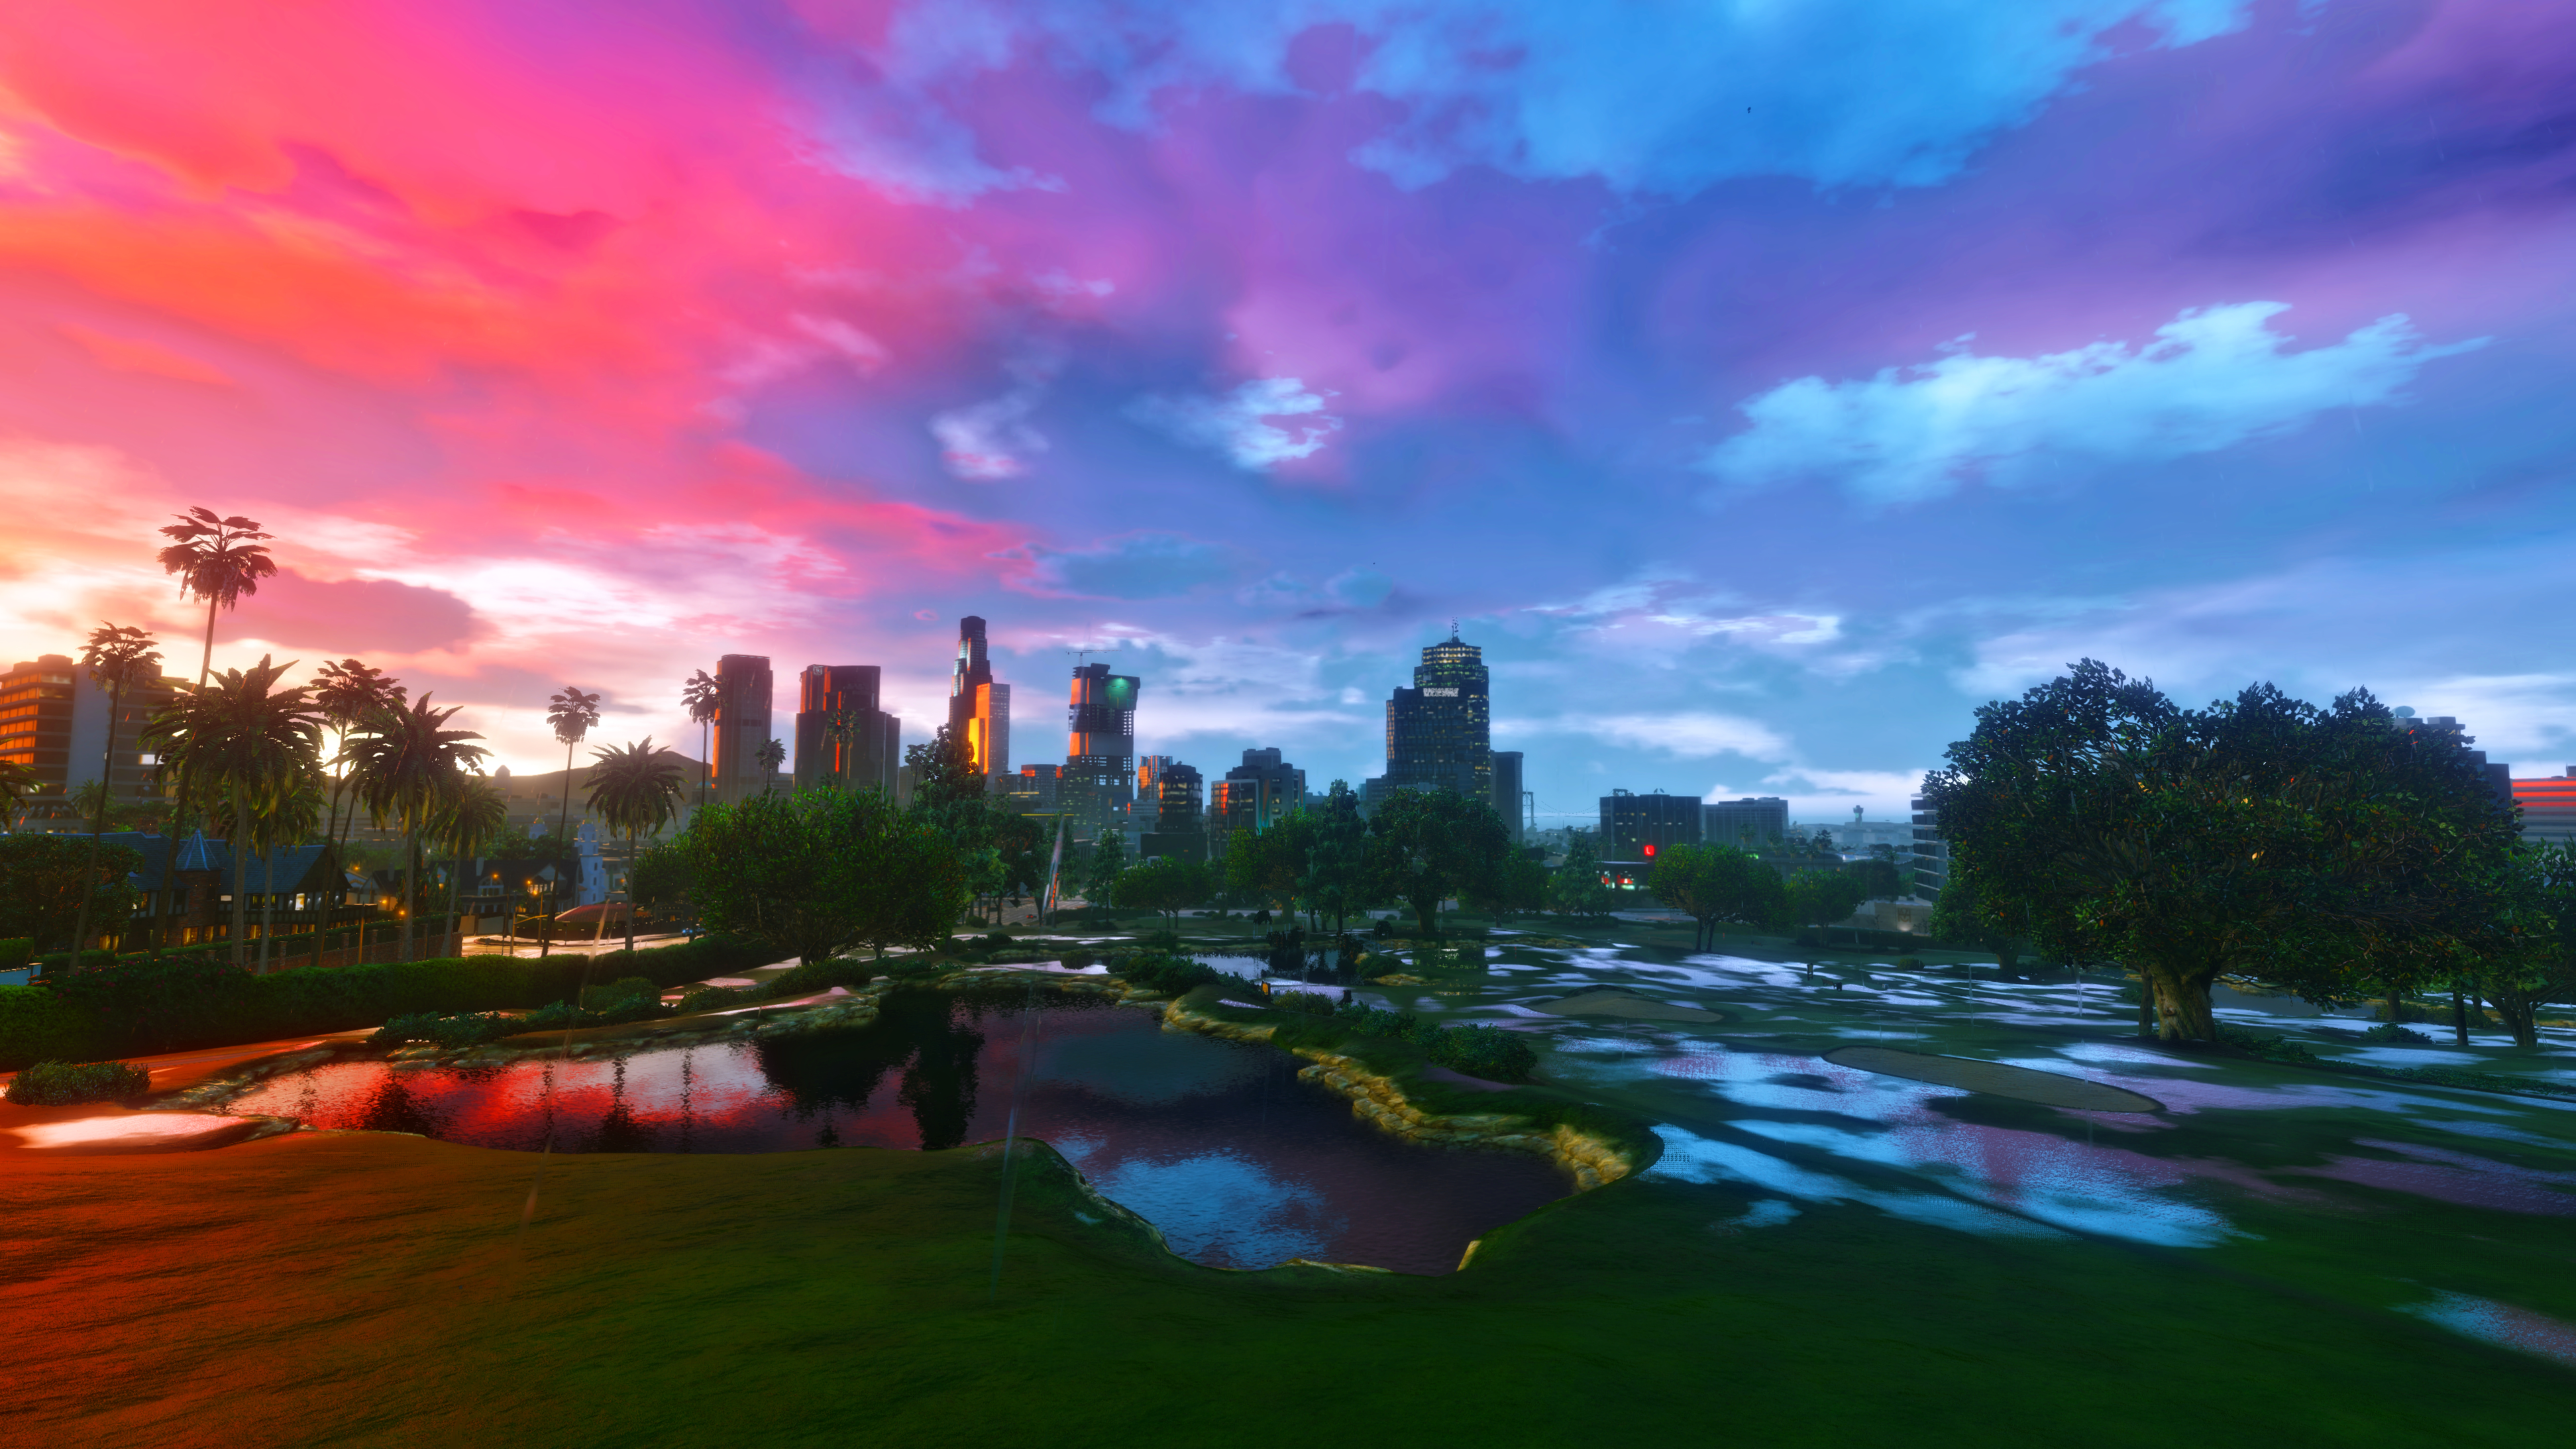 Gta V Sunrise Rainy Wallpapers 4k By Eeveeone On Deviantart